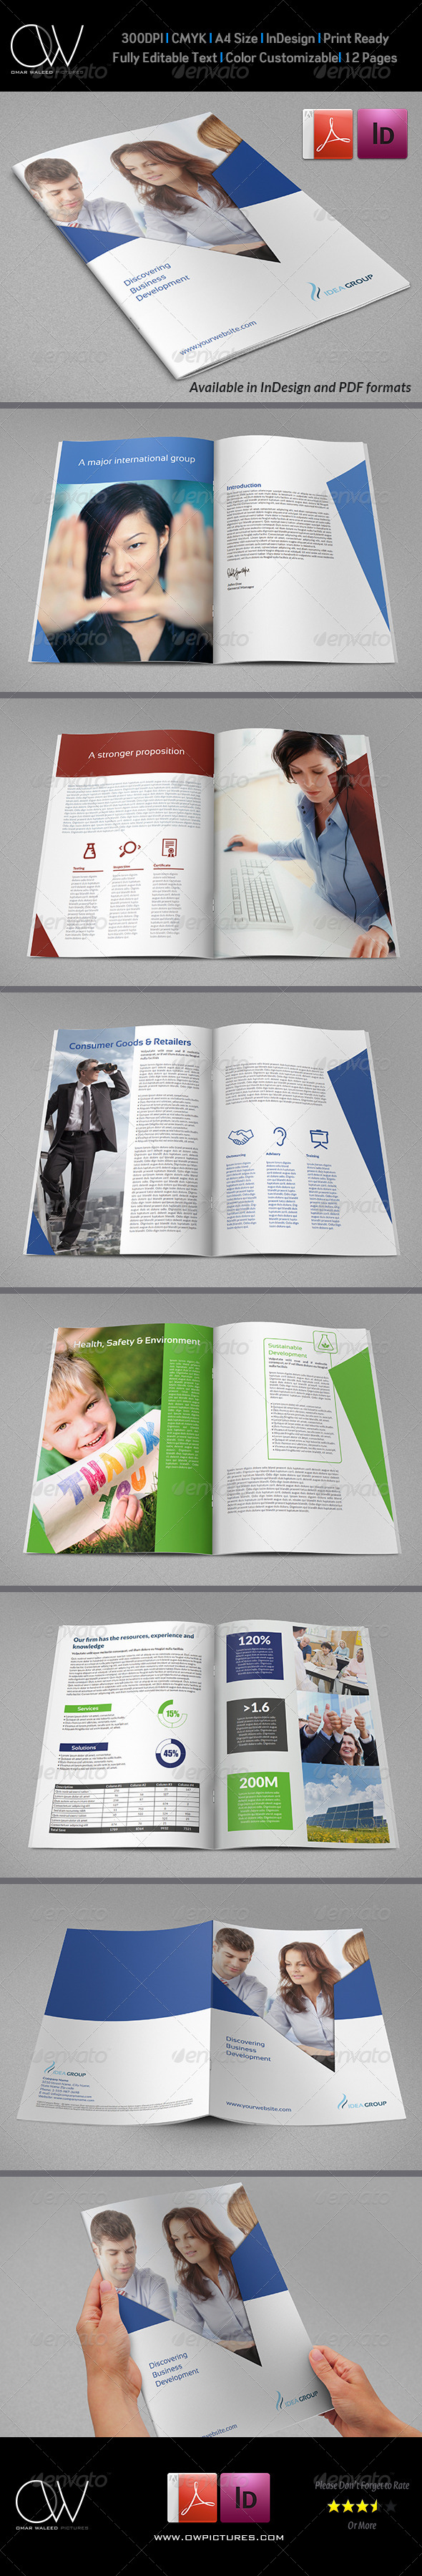 Corporate Brochure Template Vol.29 - 12 Pages - Corporate Brochures